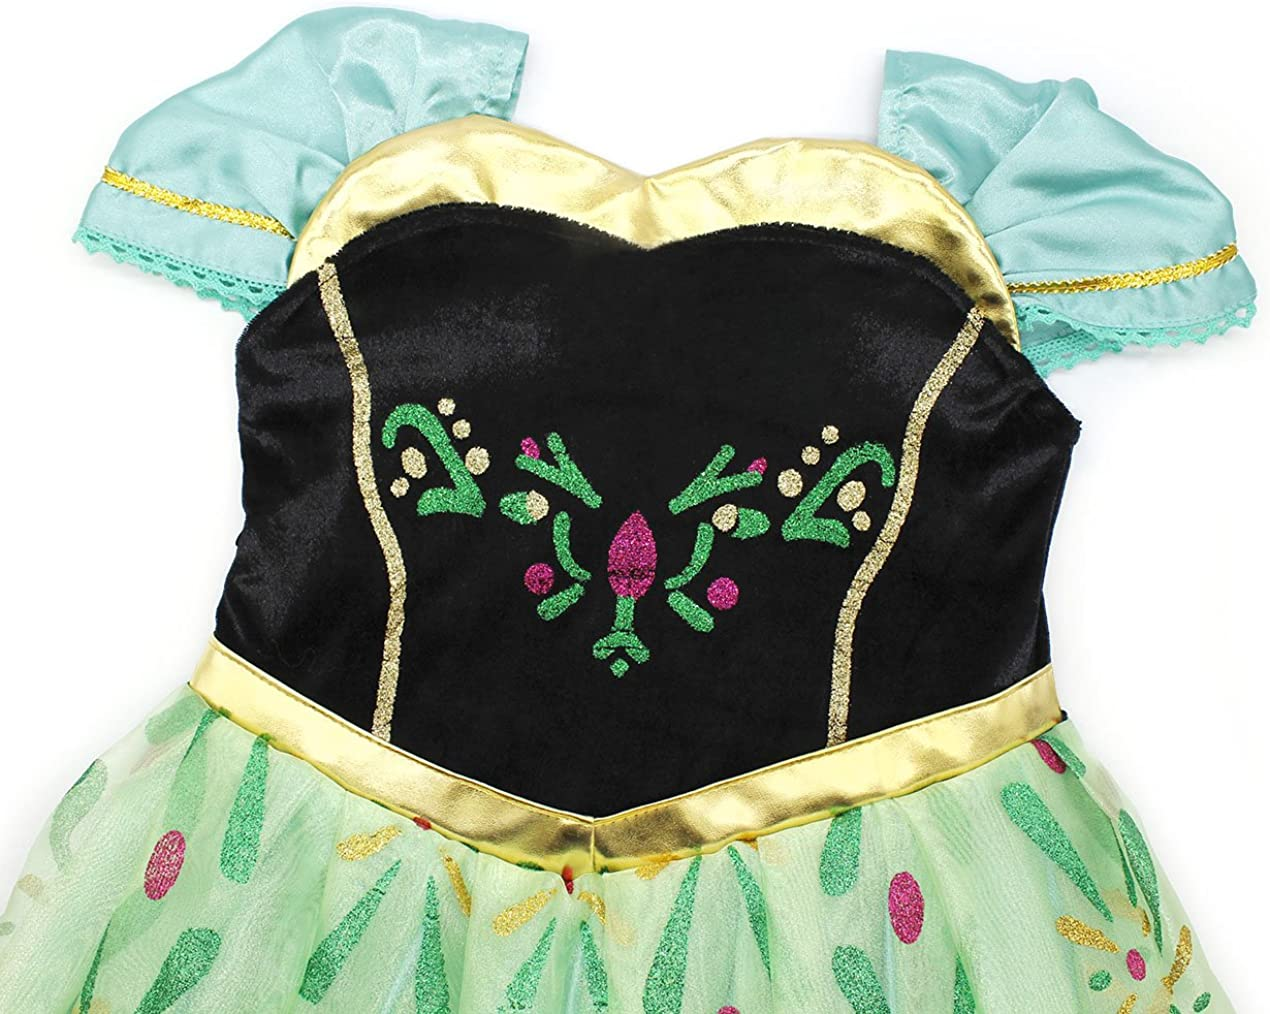 HenzWorld Little Girls Dress Outfits Costume Princess Birthday Party Halloween Cosplay Floral Layered Skirt